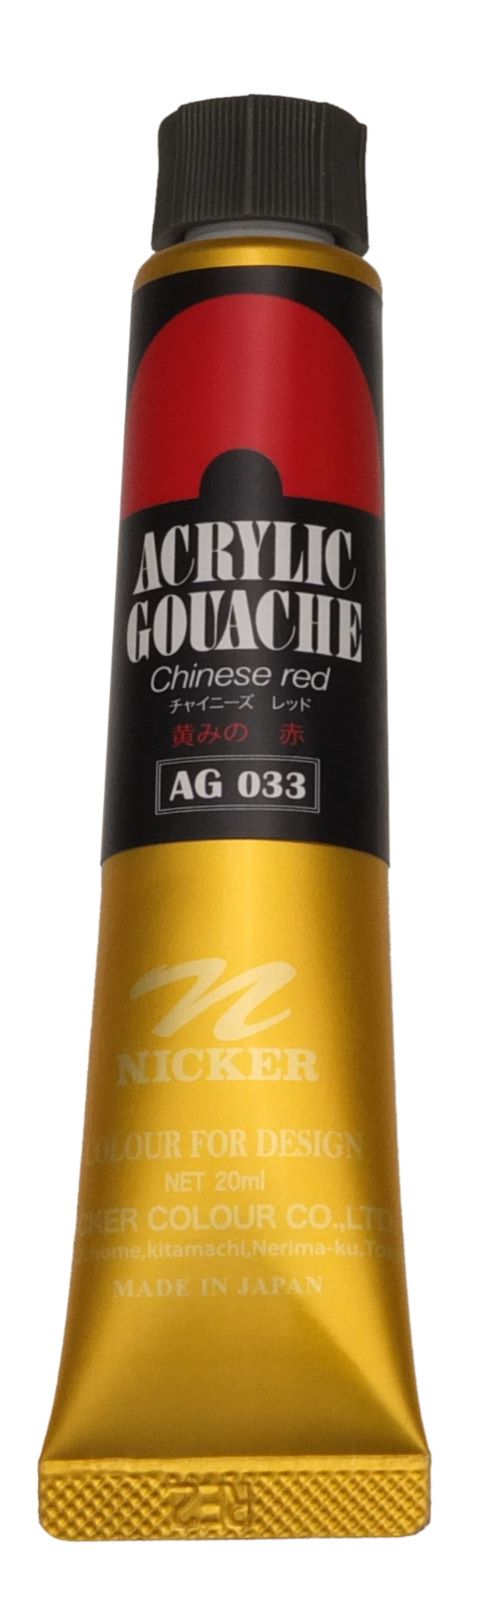 ACRYLIC GOUACHE 20ml AG033 CHINESE RED